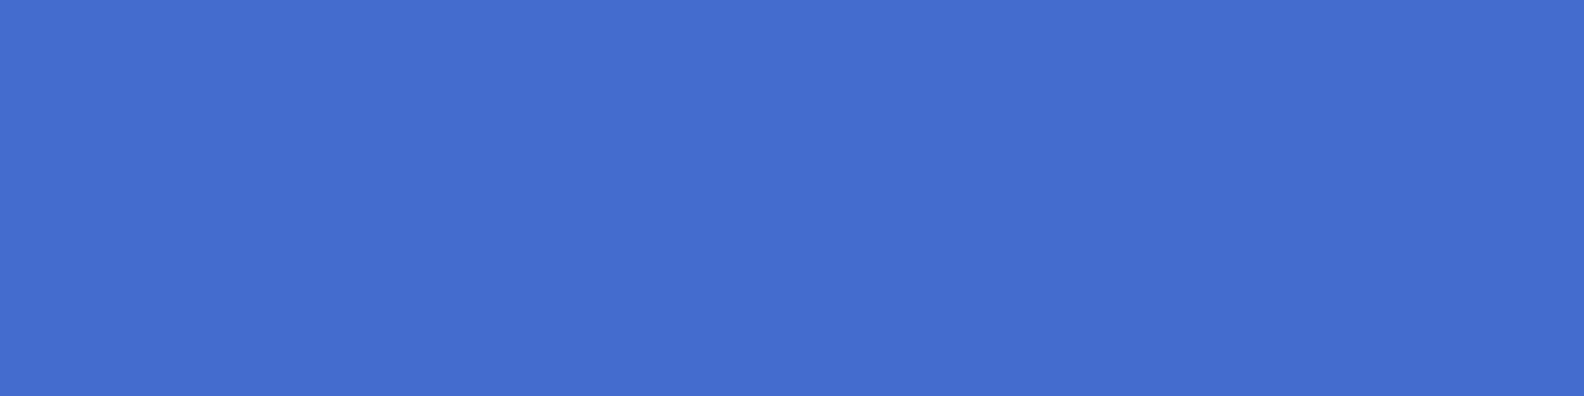 1584x396 Han Blue Solid Color Background